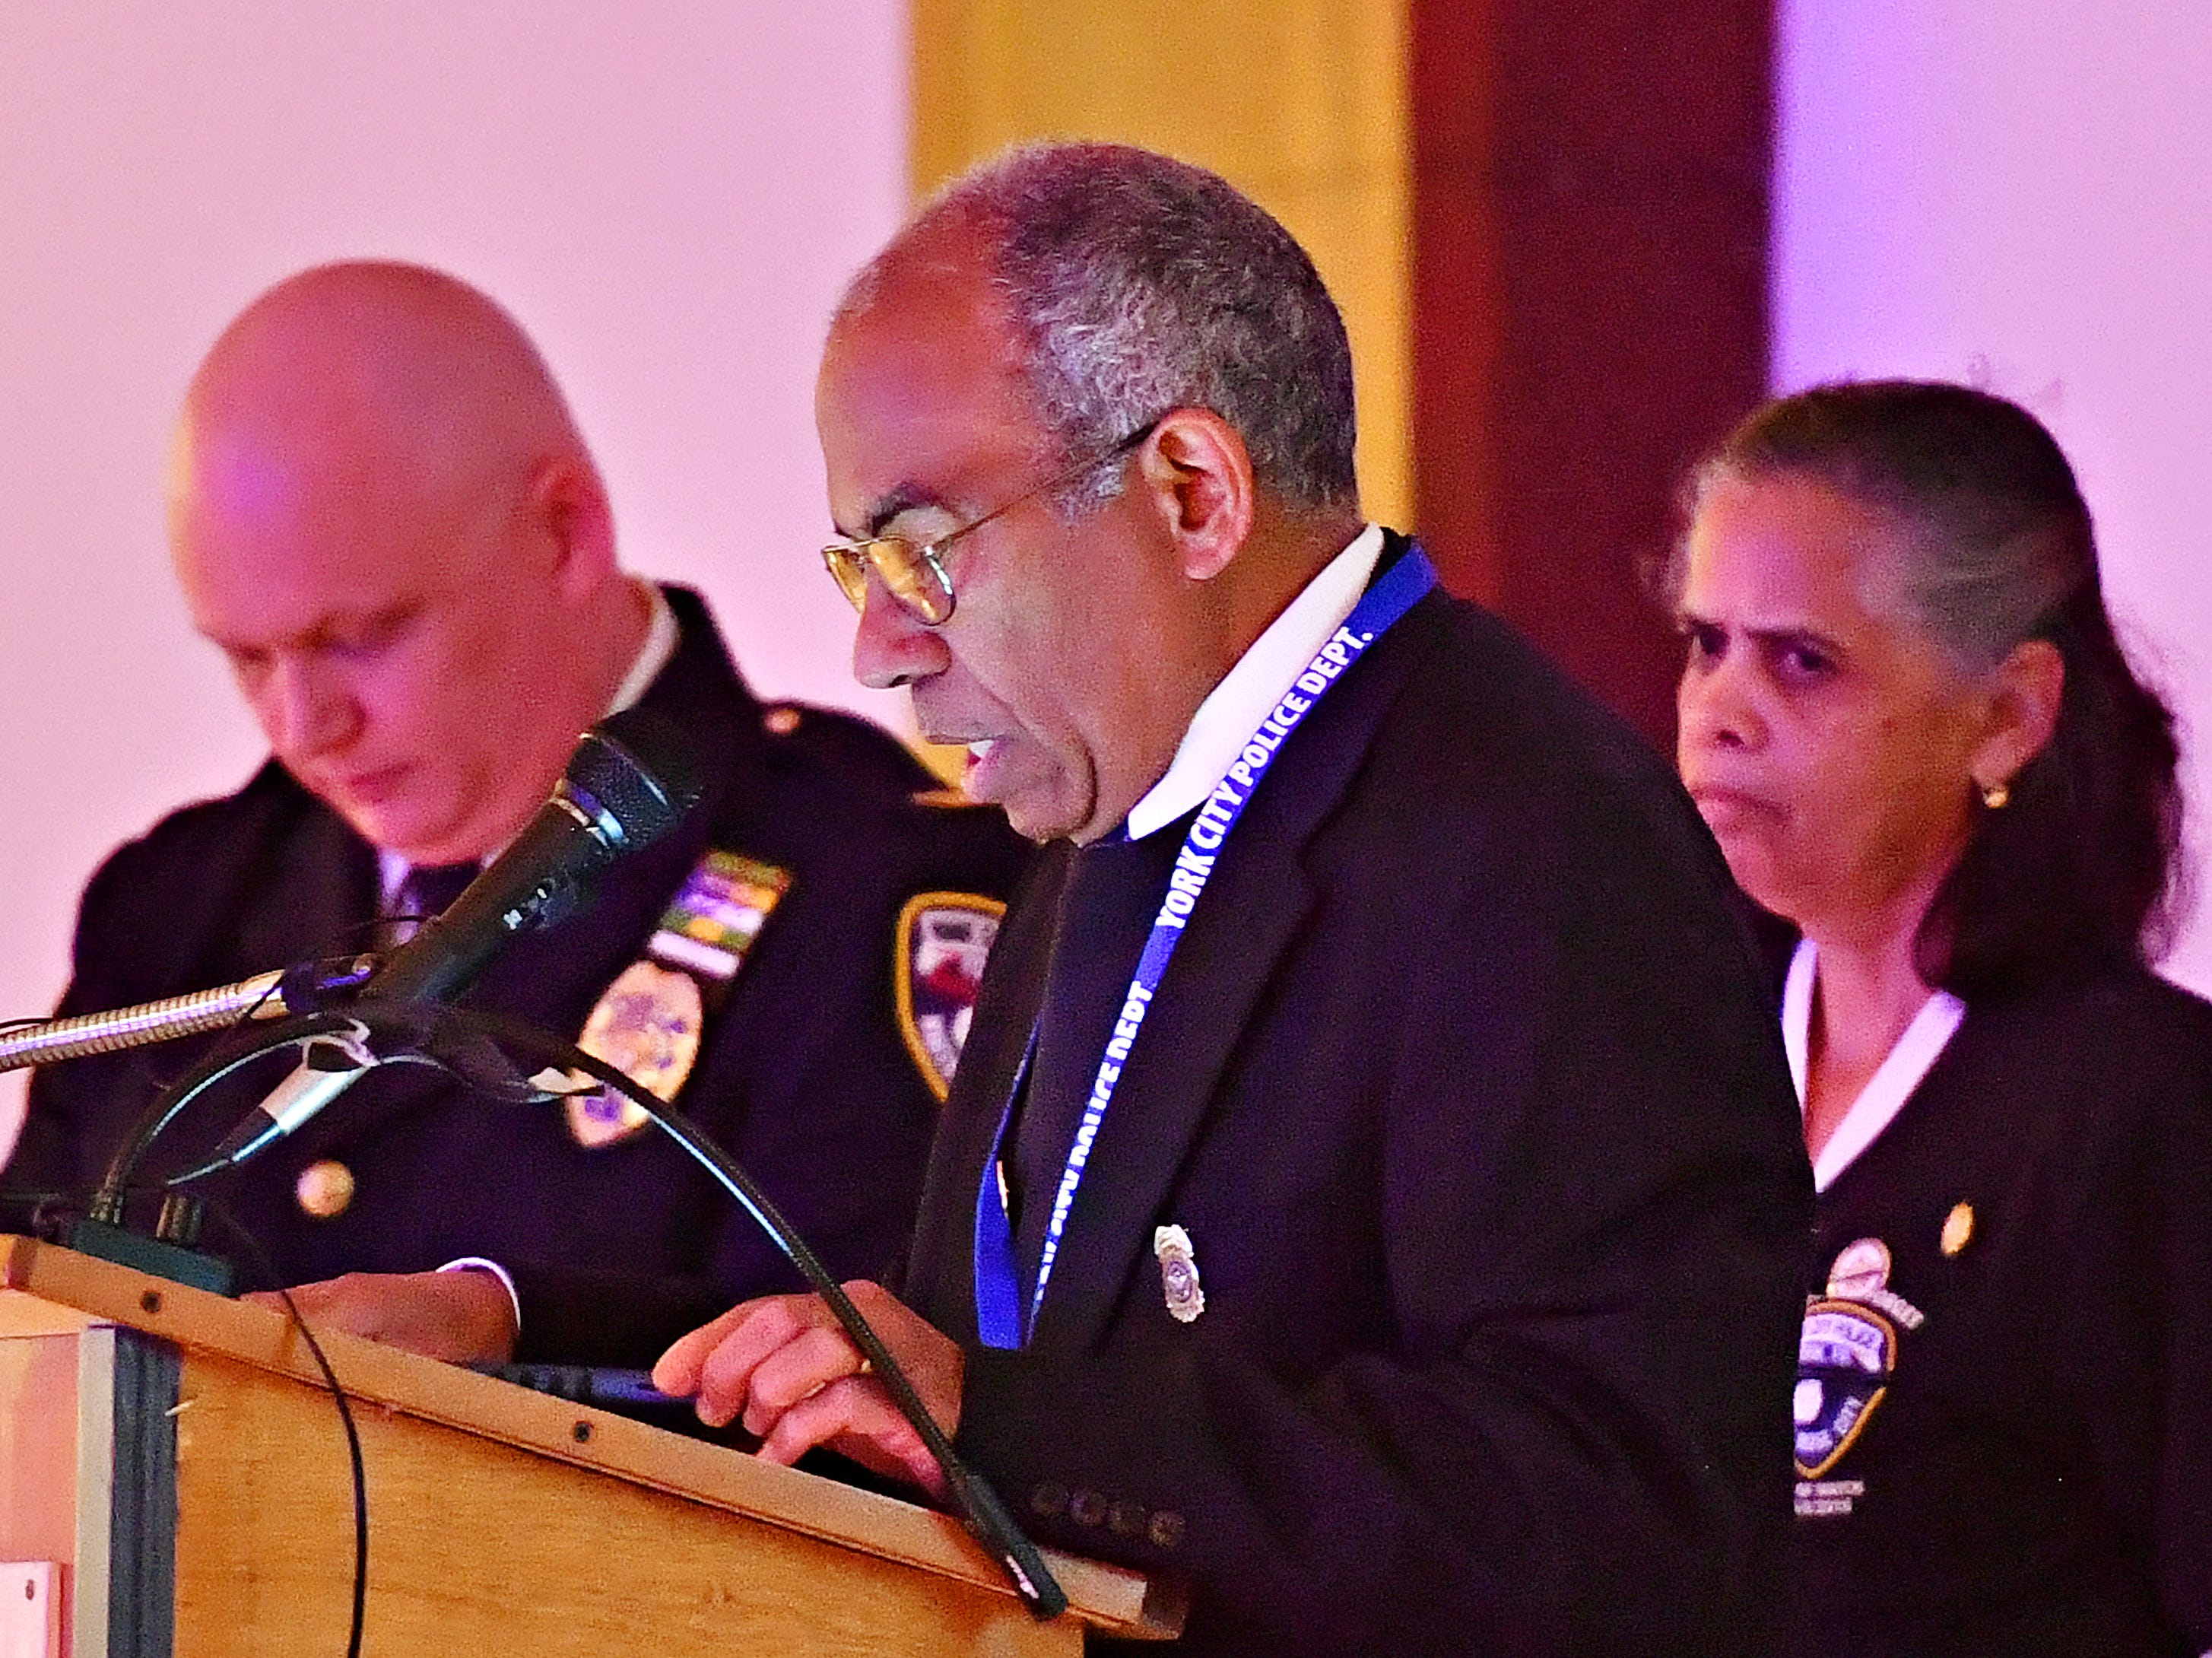 York City Police Chaplain Aliz Sable gives the invocation during the York City Police Departmental Awards Ceremony at Valencia Ballroom in York City, Thursday, May 9, 2019. Dawn J. Sagert photo